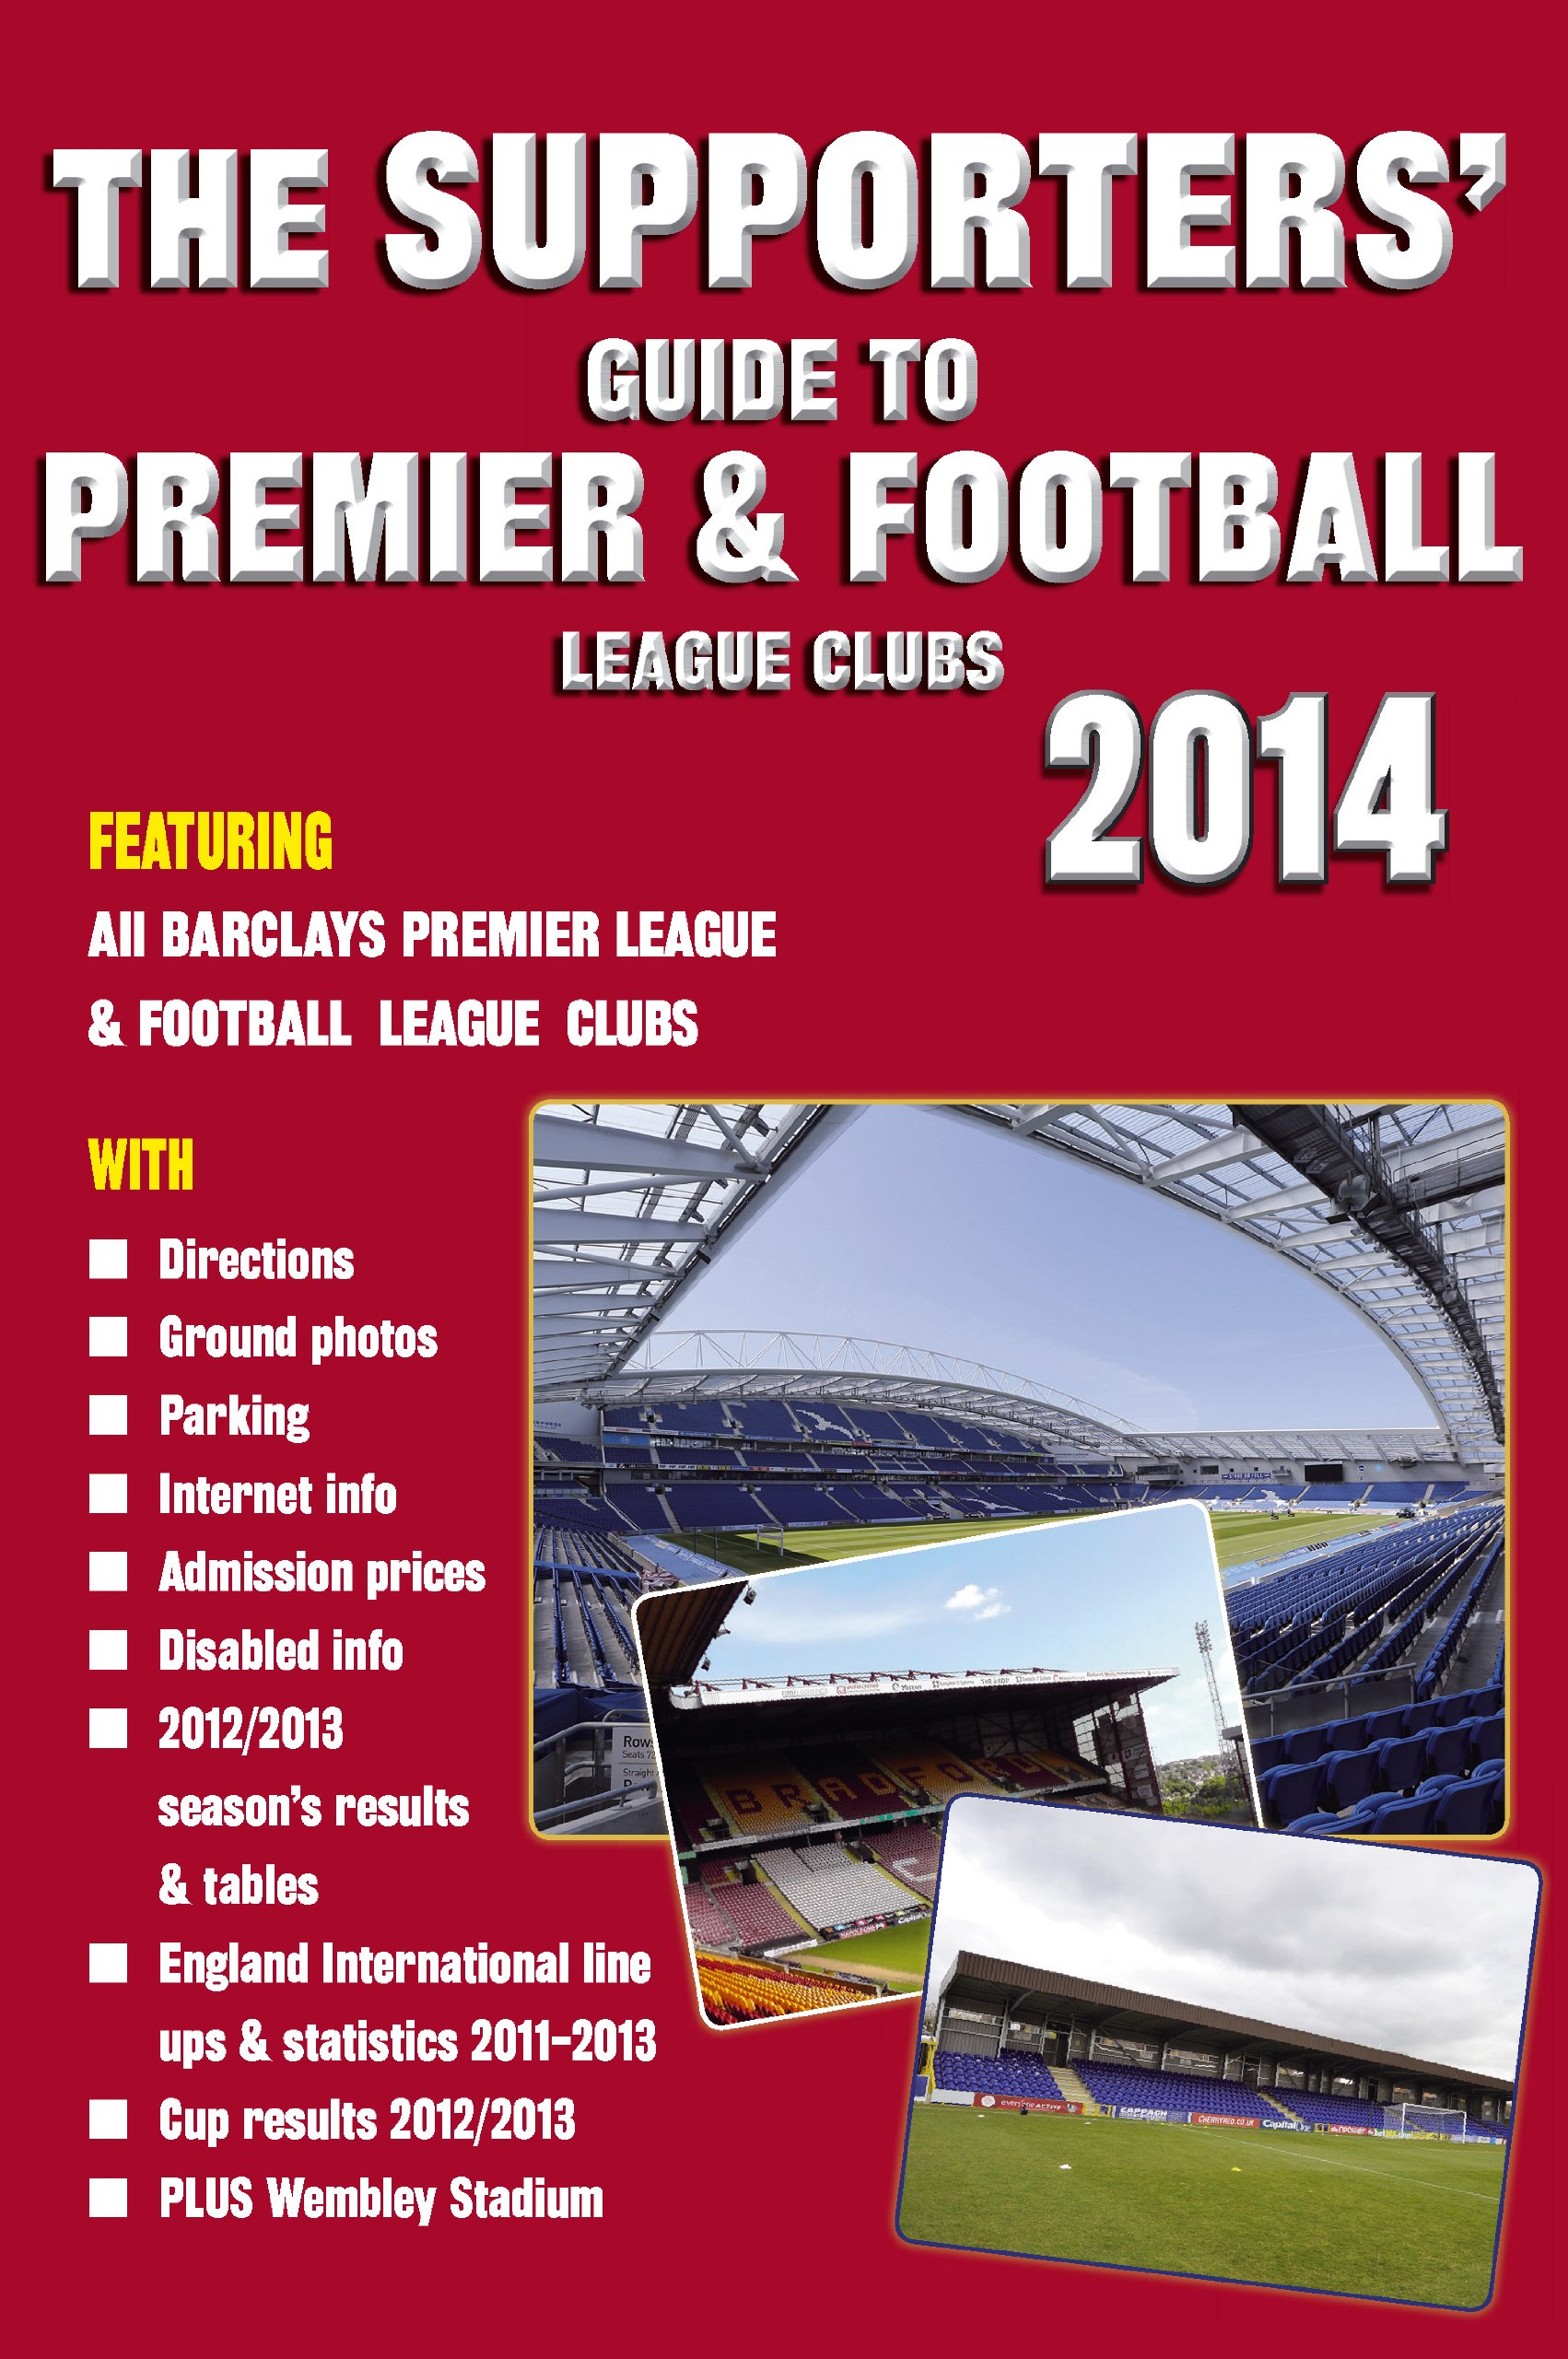 Download The Supporters' Guide to Premier & Football League Clubs 2014 ebook